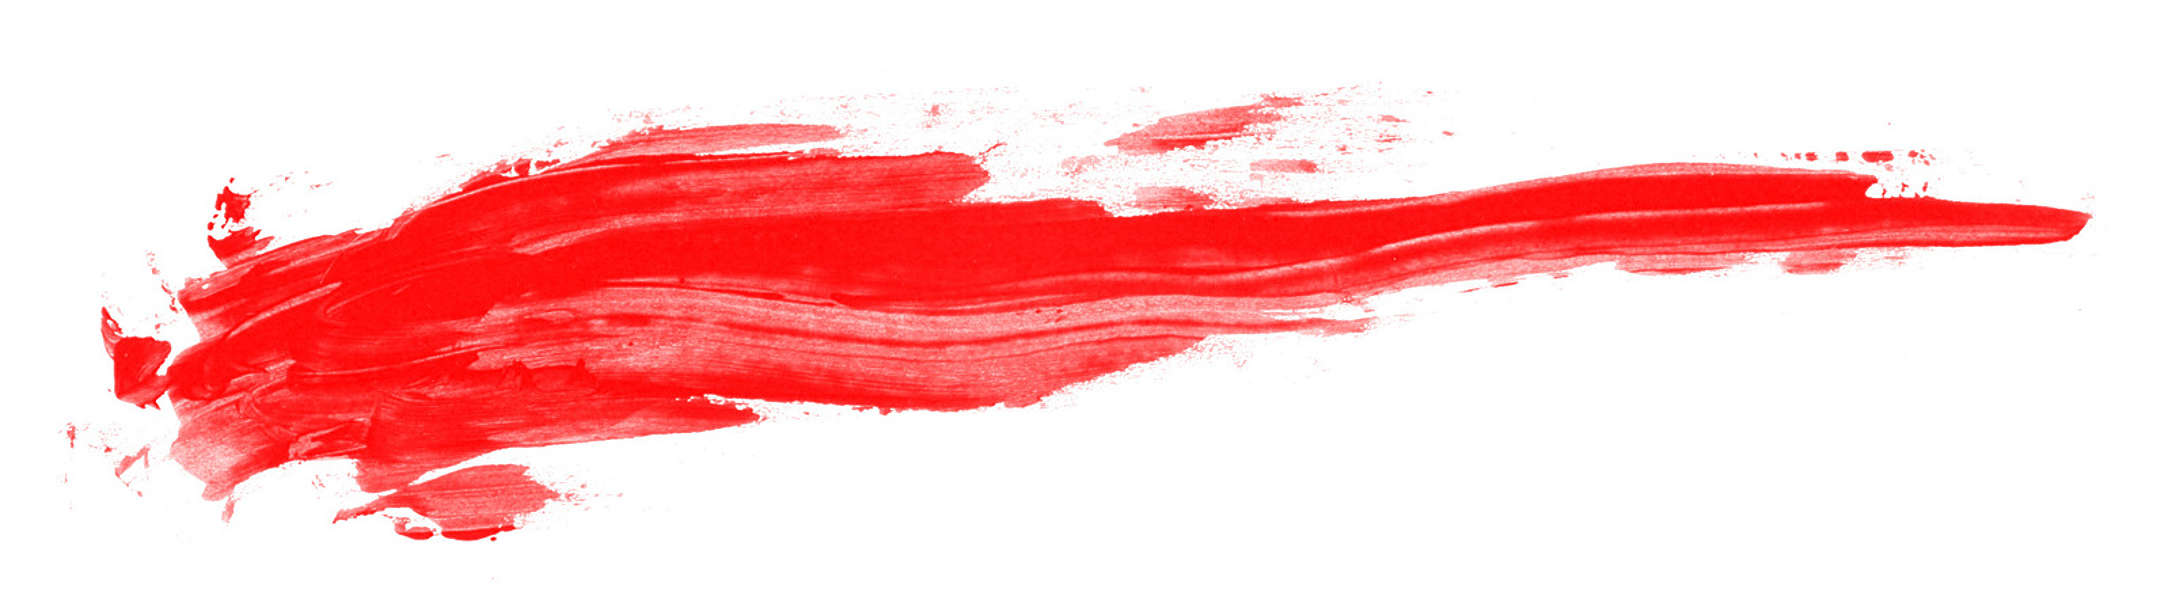 Red Paint Smudge